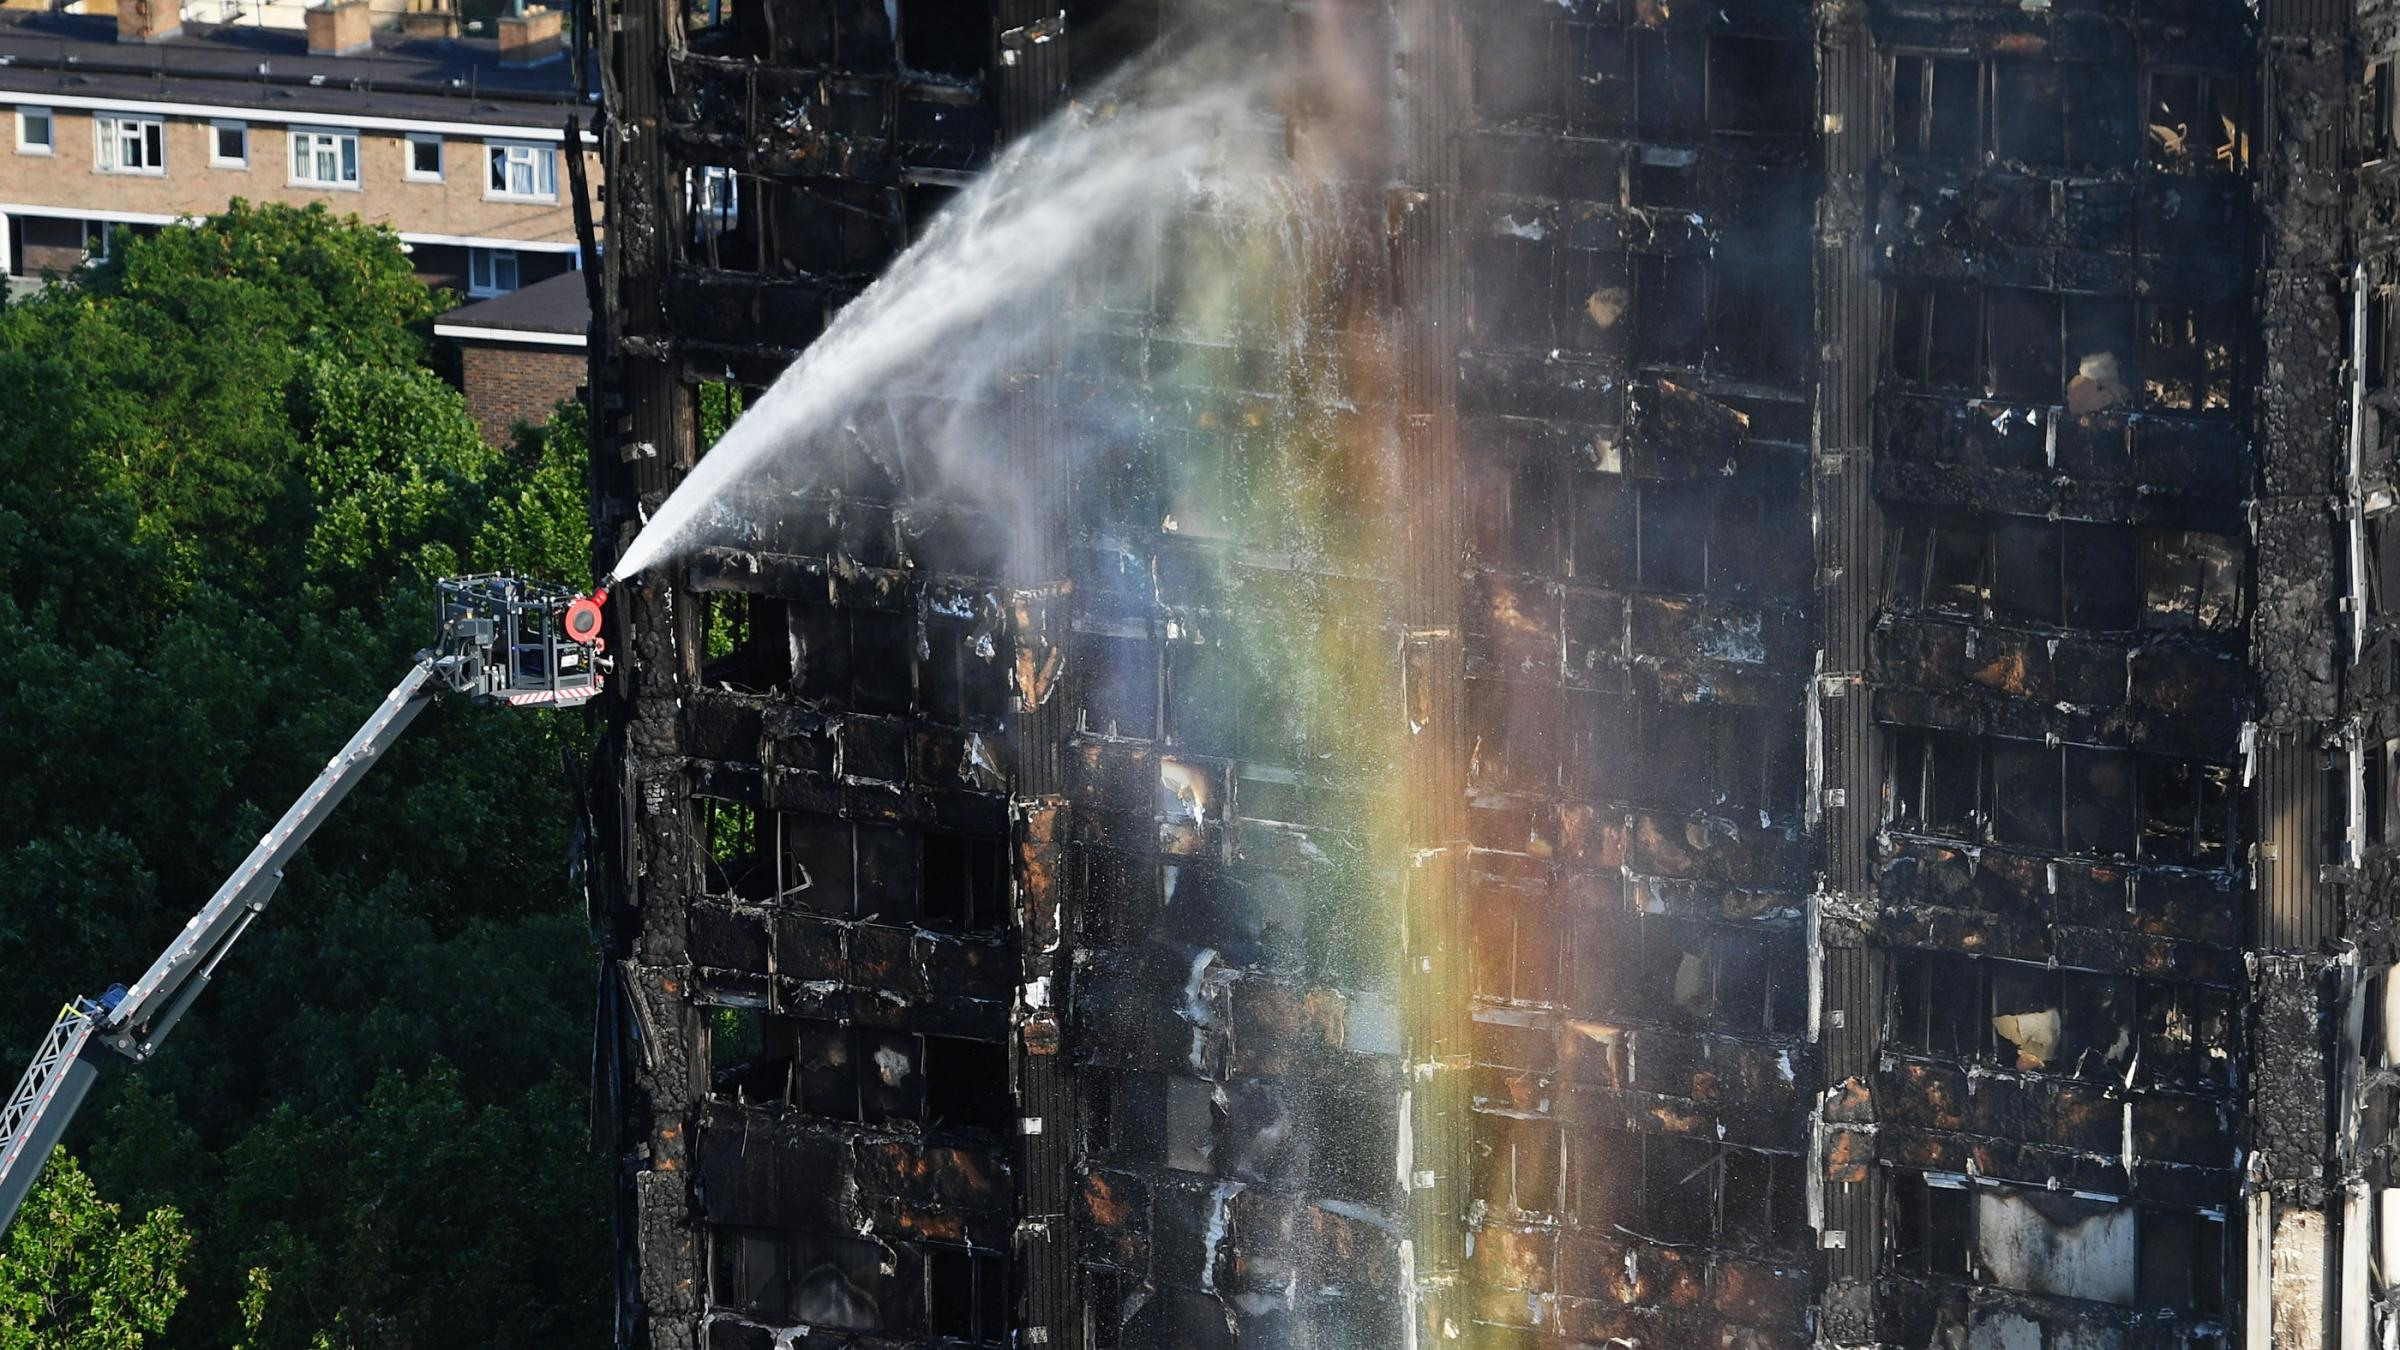 London high-rise fire death toll rises to 17